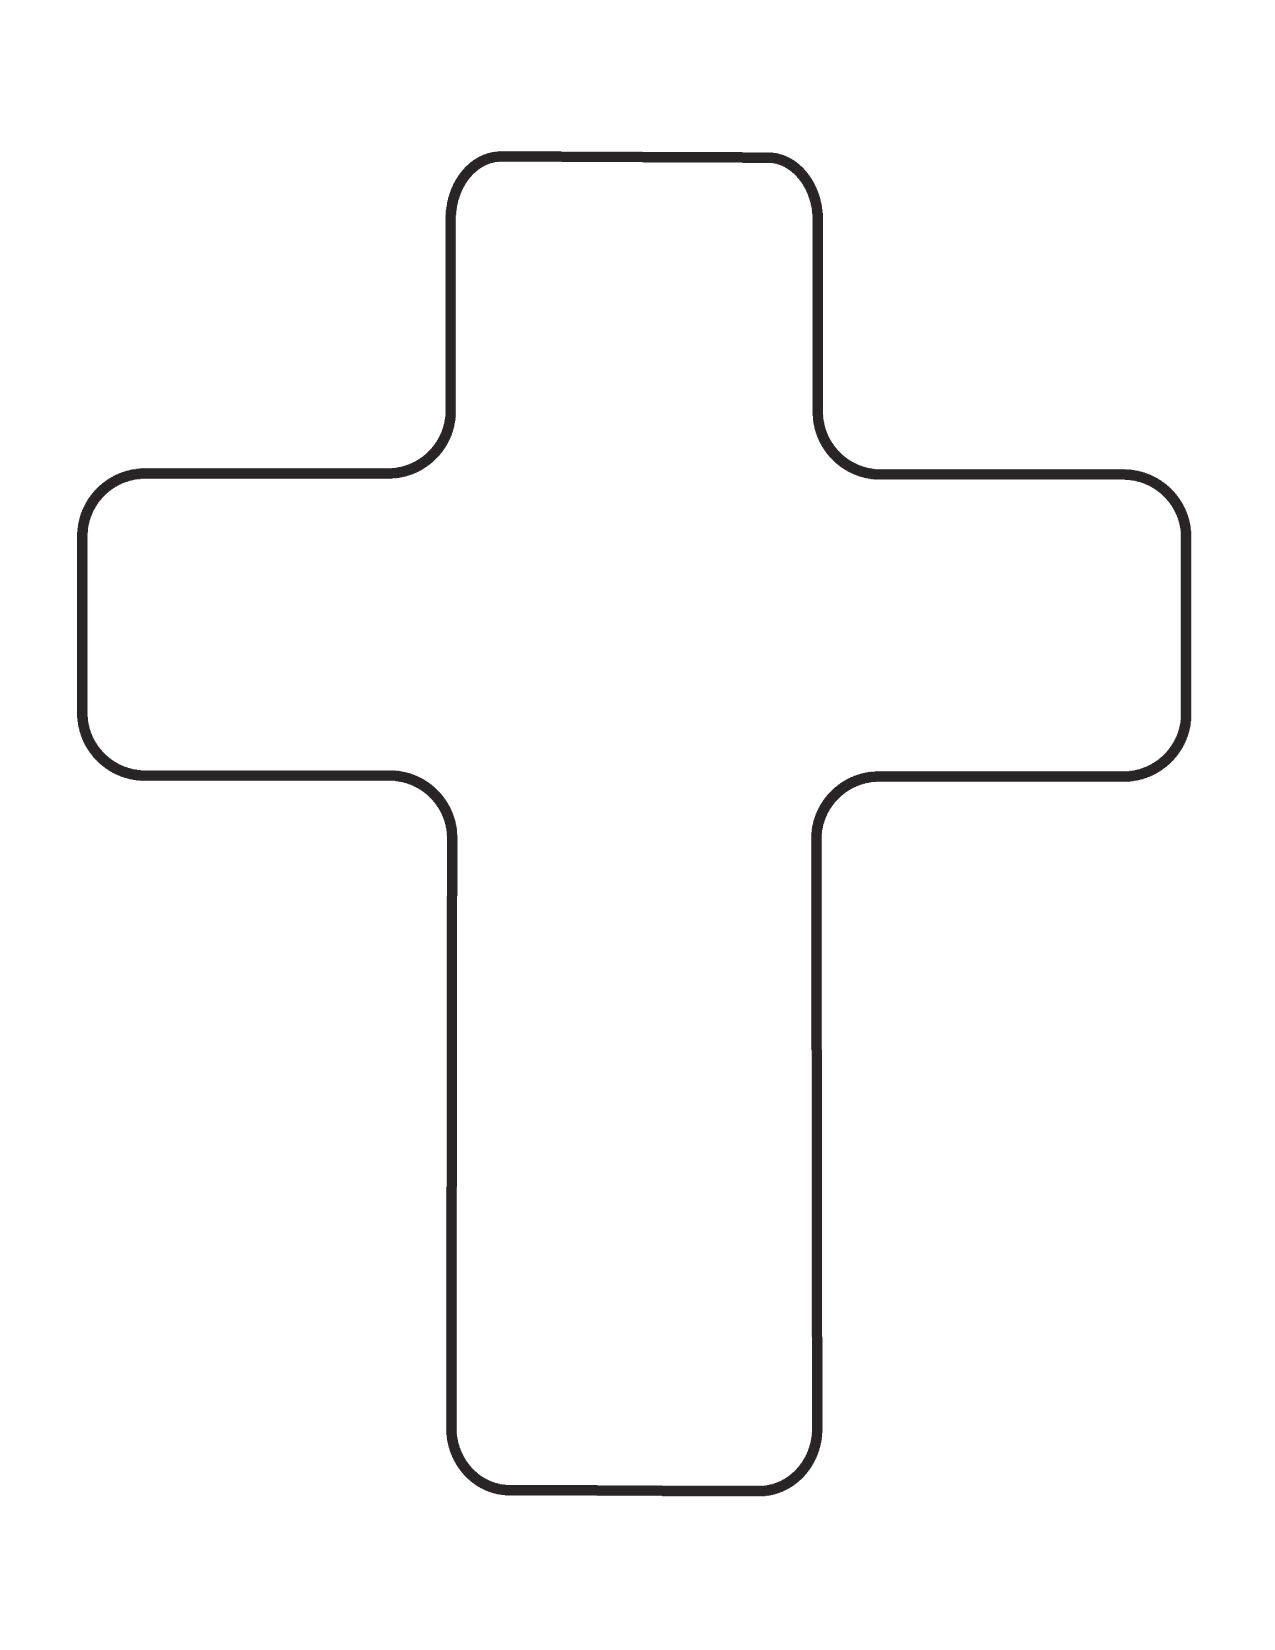 Cross Outline Clipart - ClipArt Best